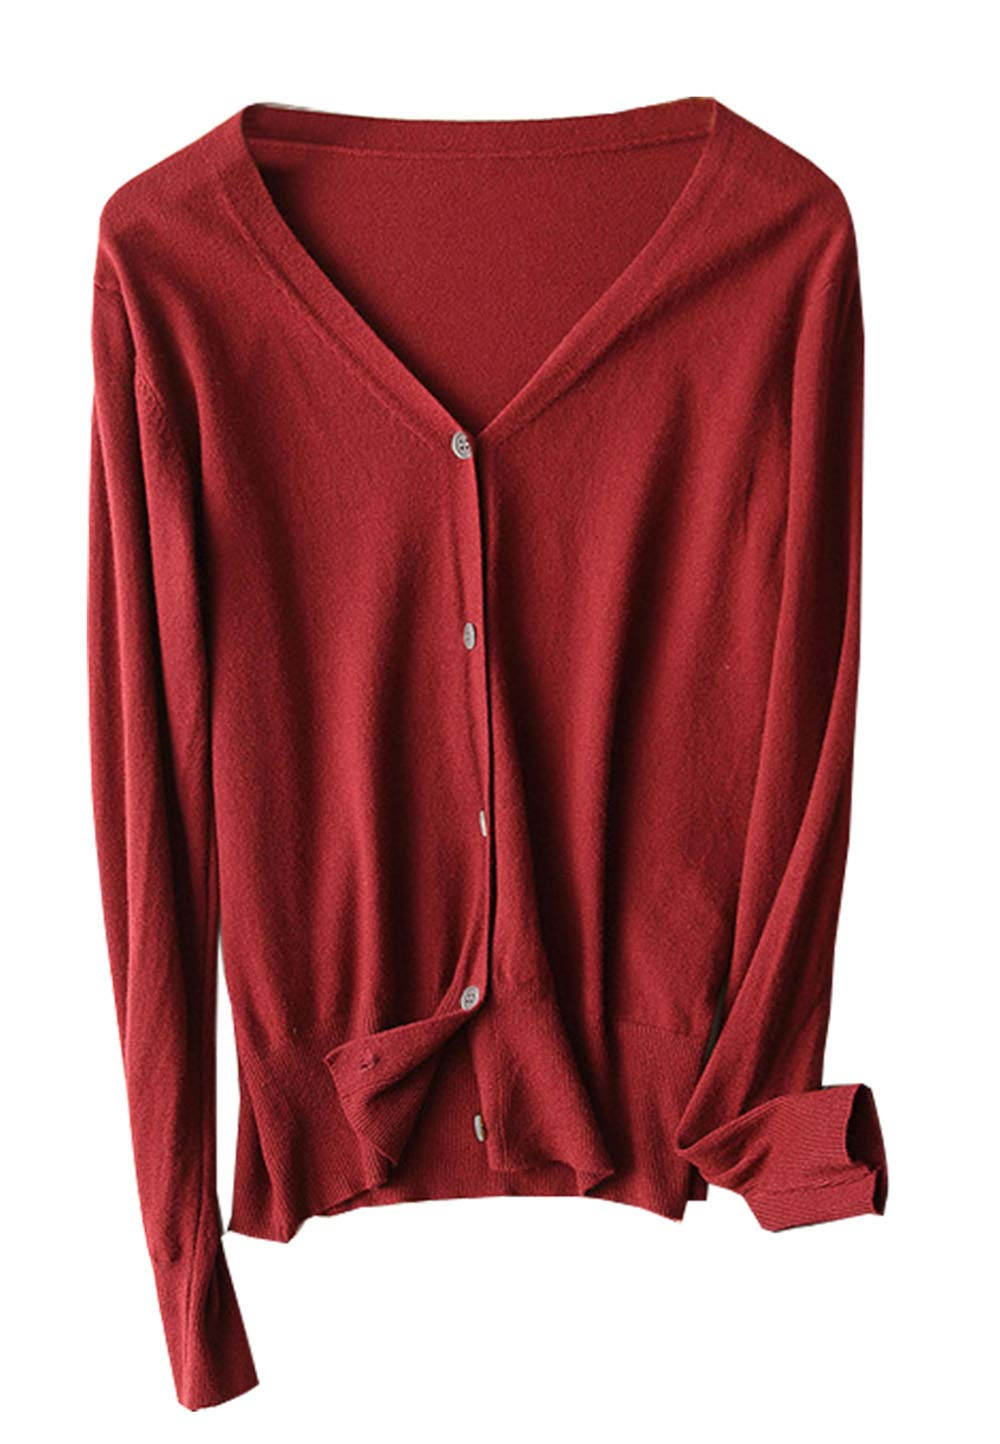 Les umes Womens V Neck Button Down Ribbed Knit Solid Soft Petite Cropped Sweater Cardigan Tops Wine Red US 6-8